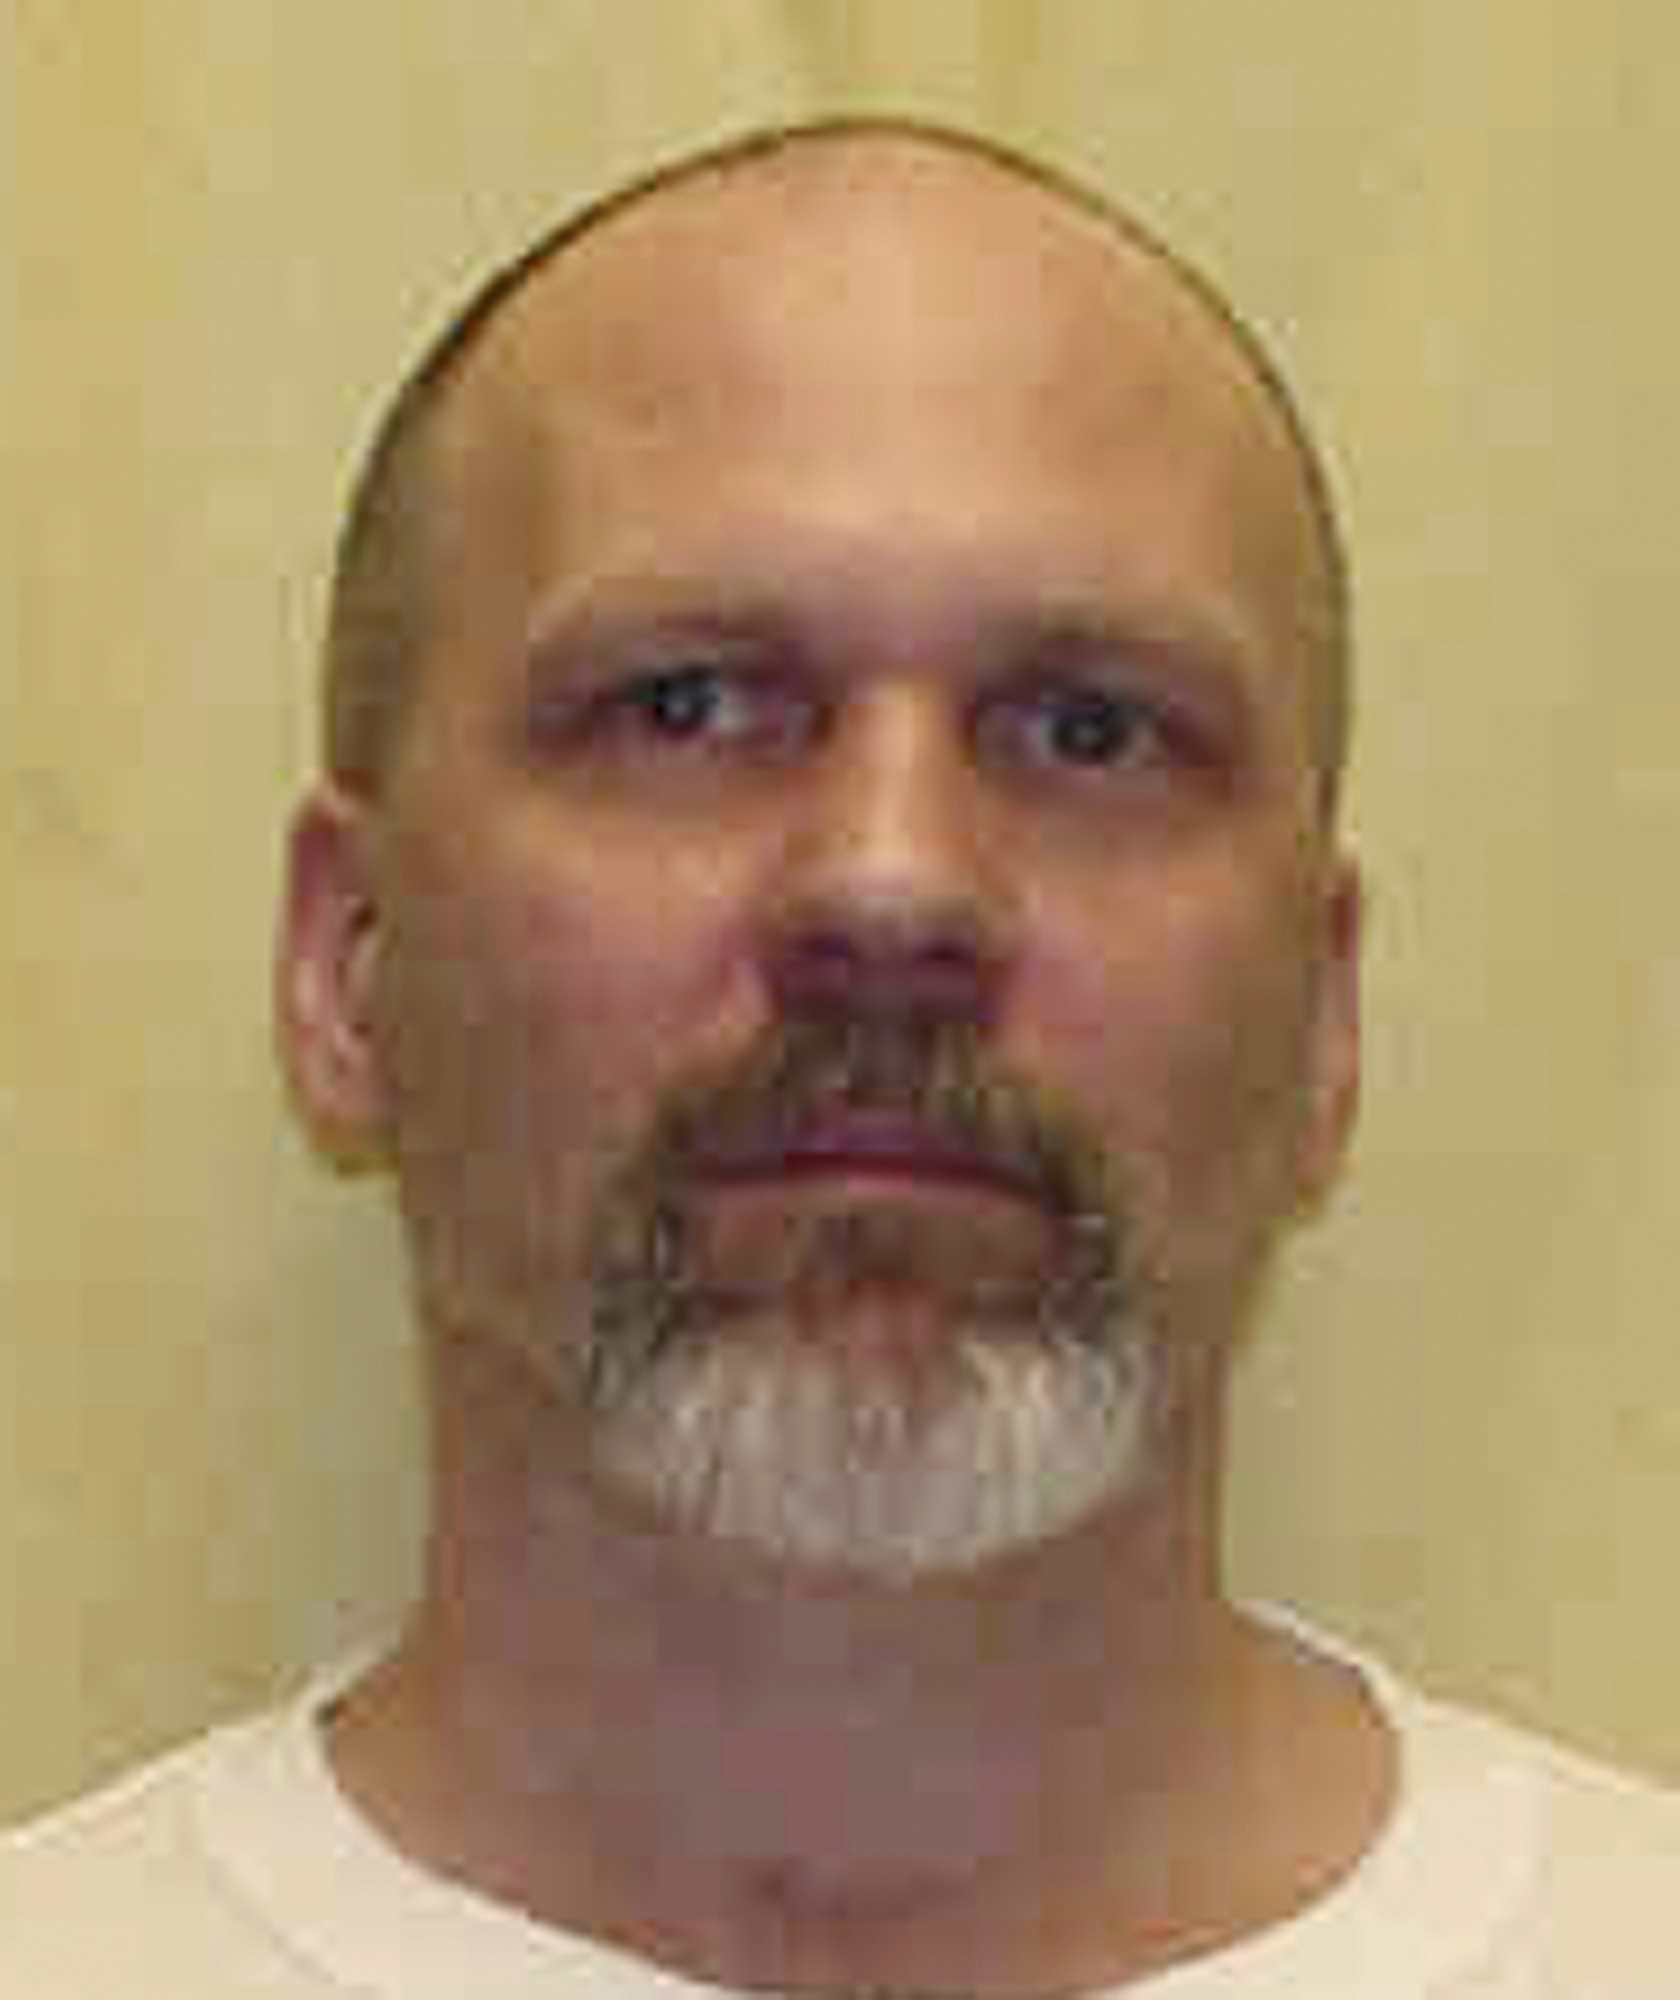 ohio governor delays execution  orders look at other drugs